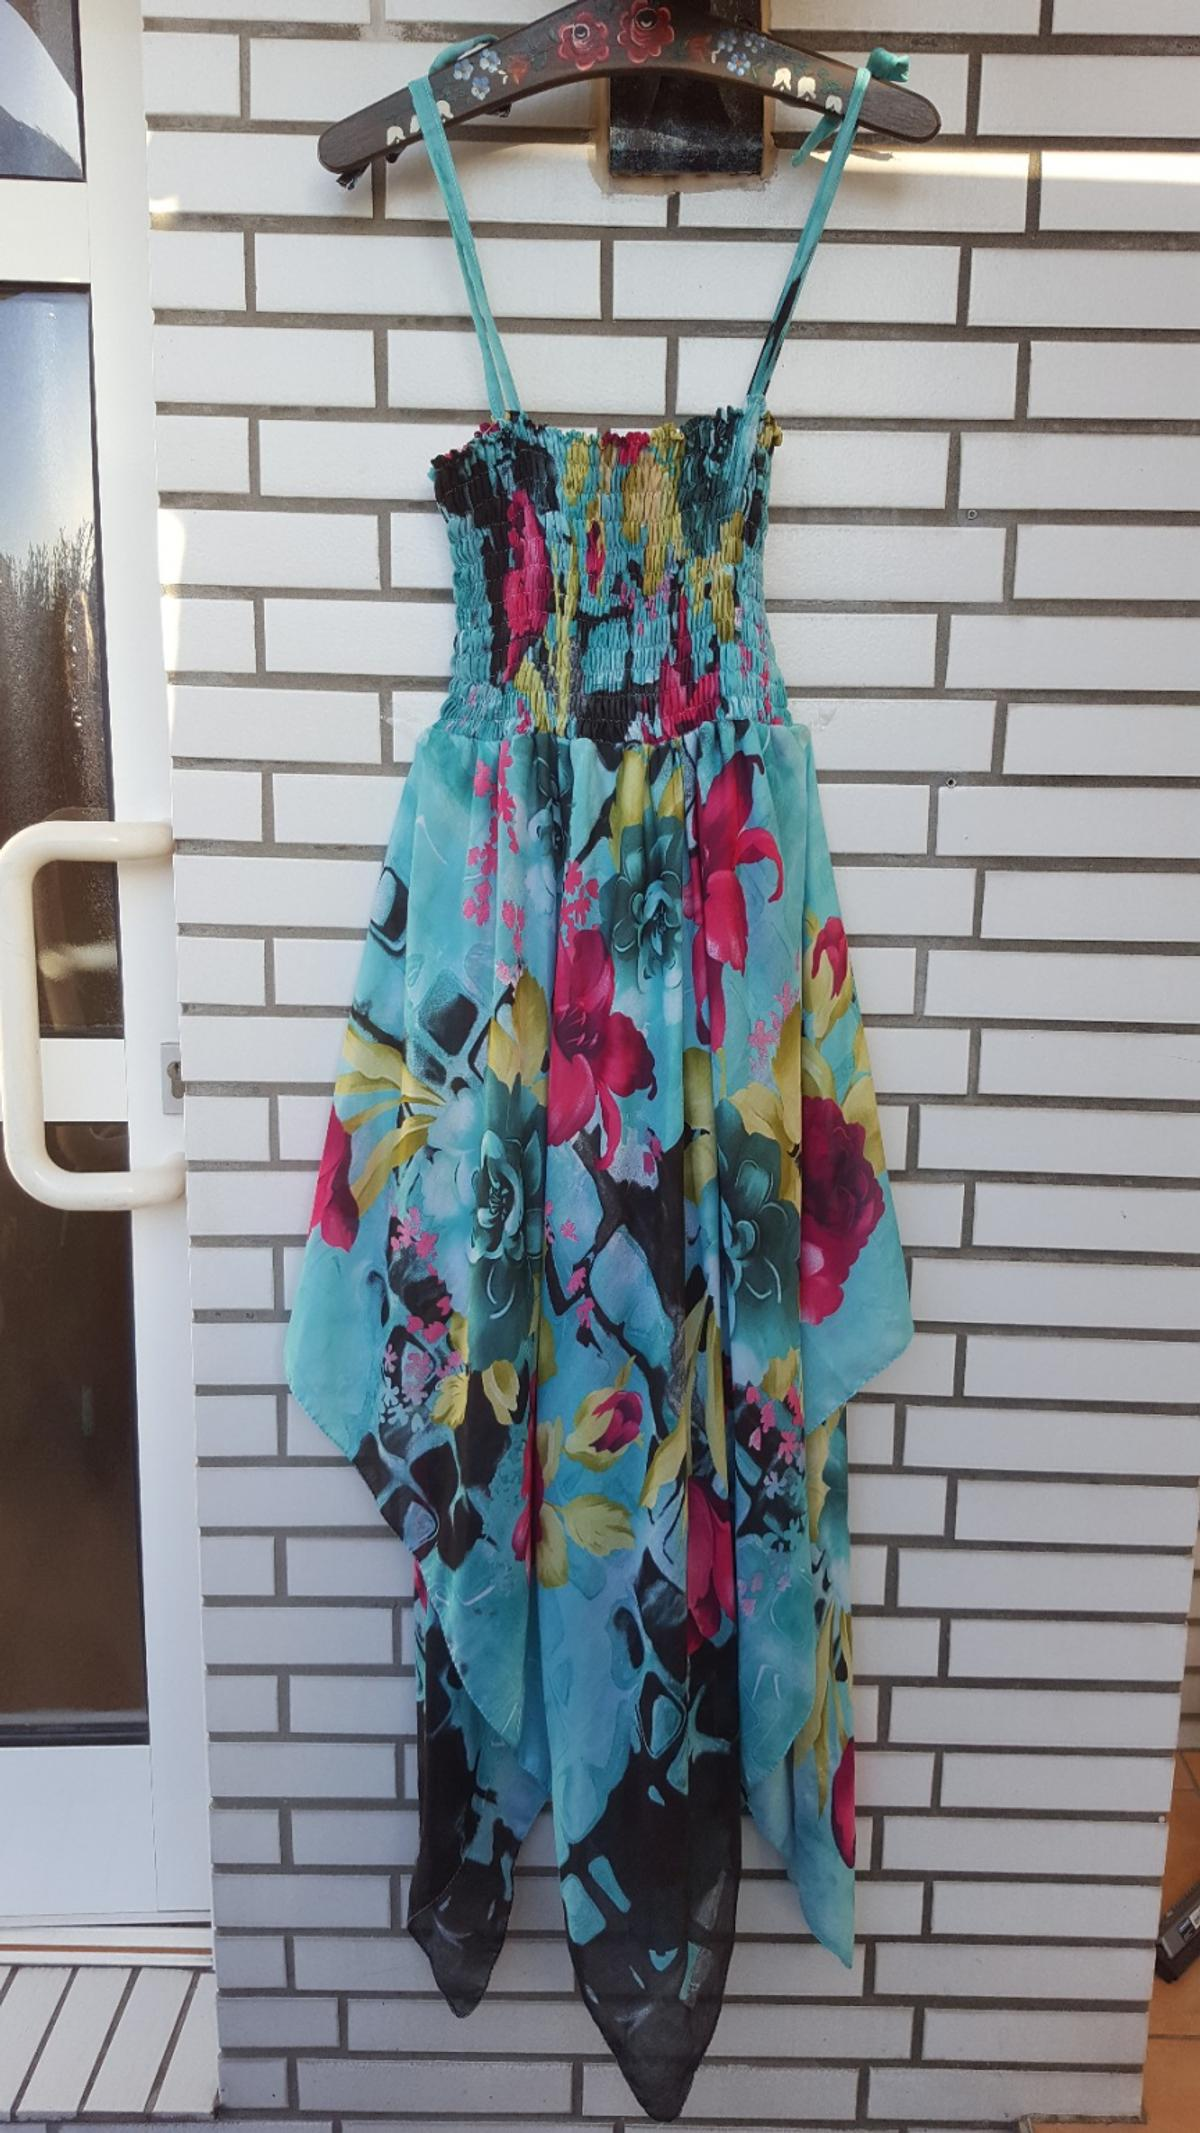 maxi kleid/strandkleid/made italy in 45768 marl for €15.00